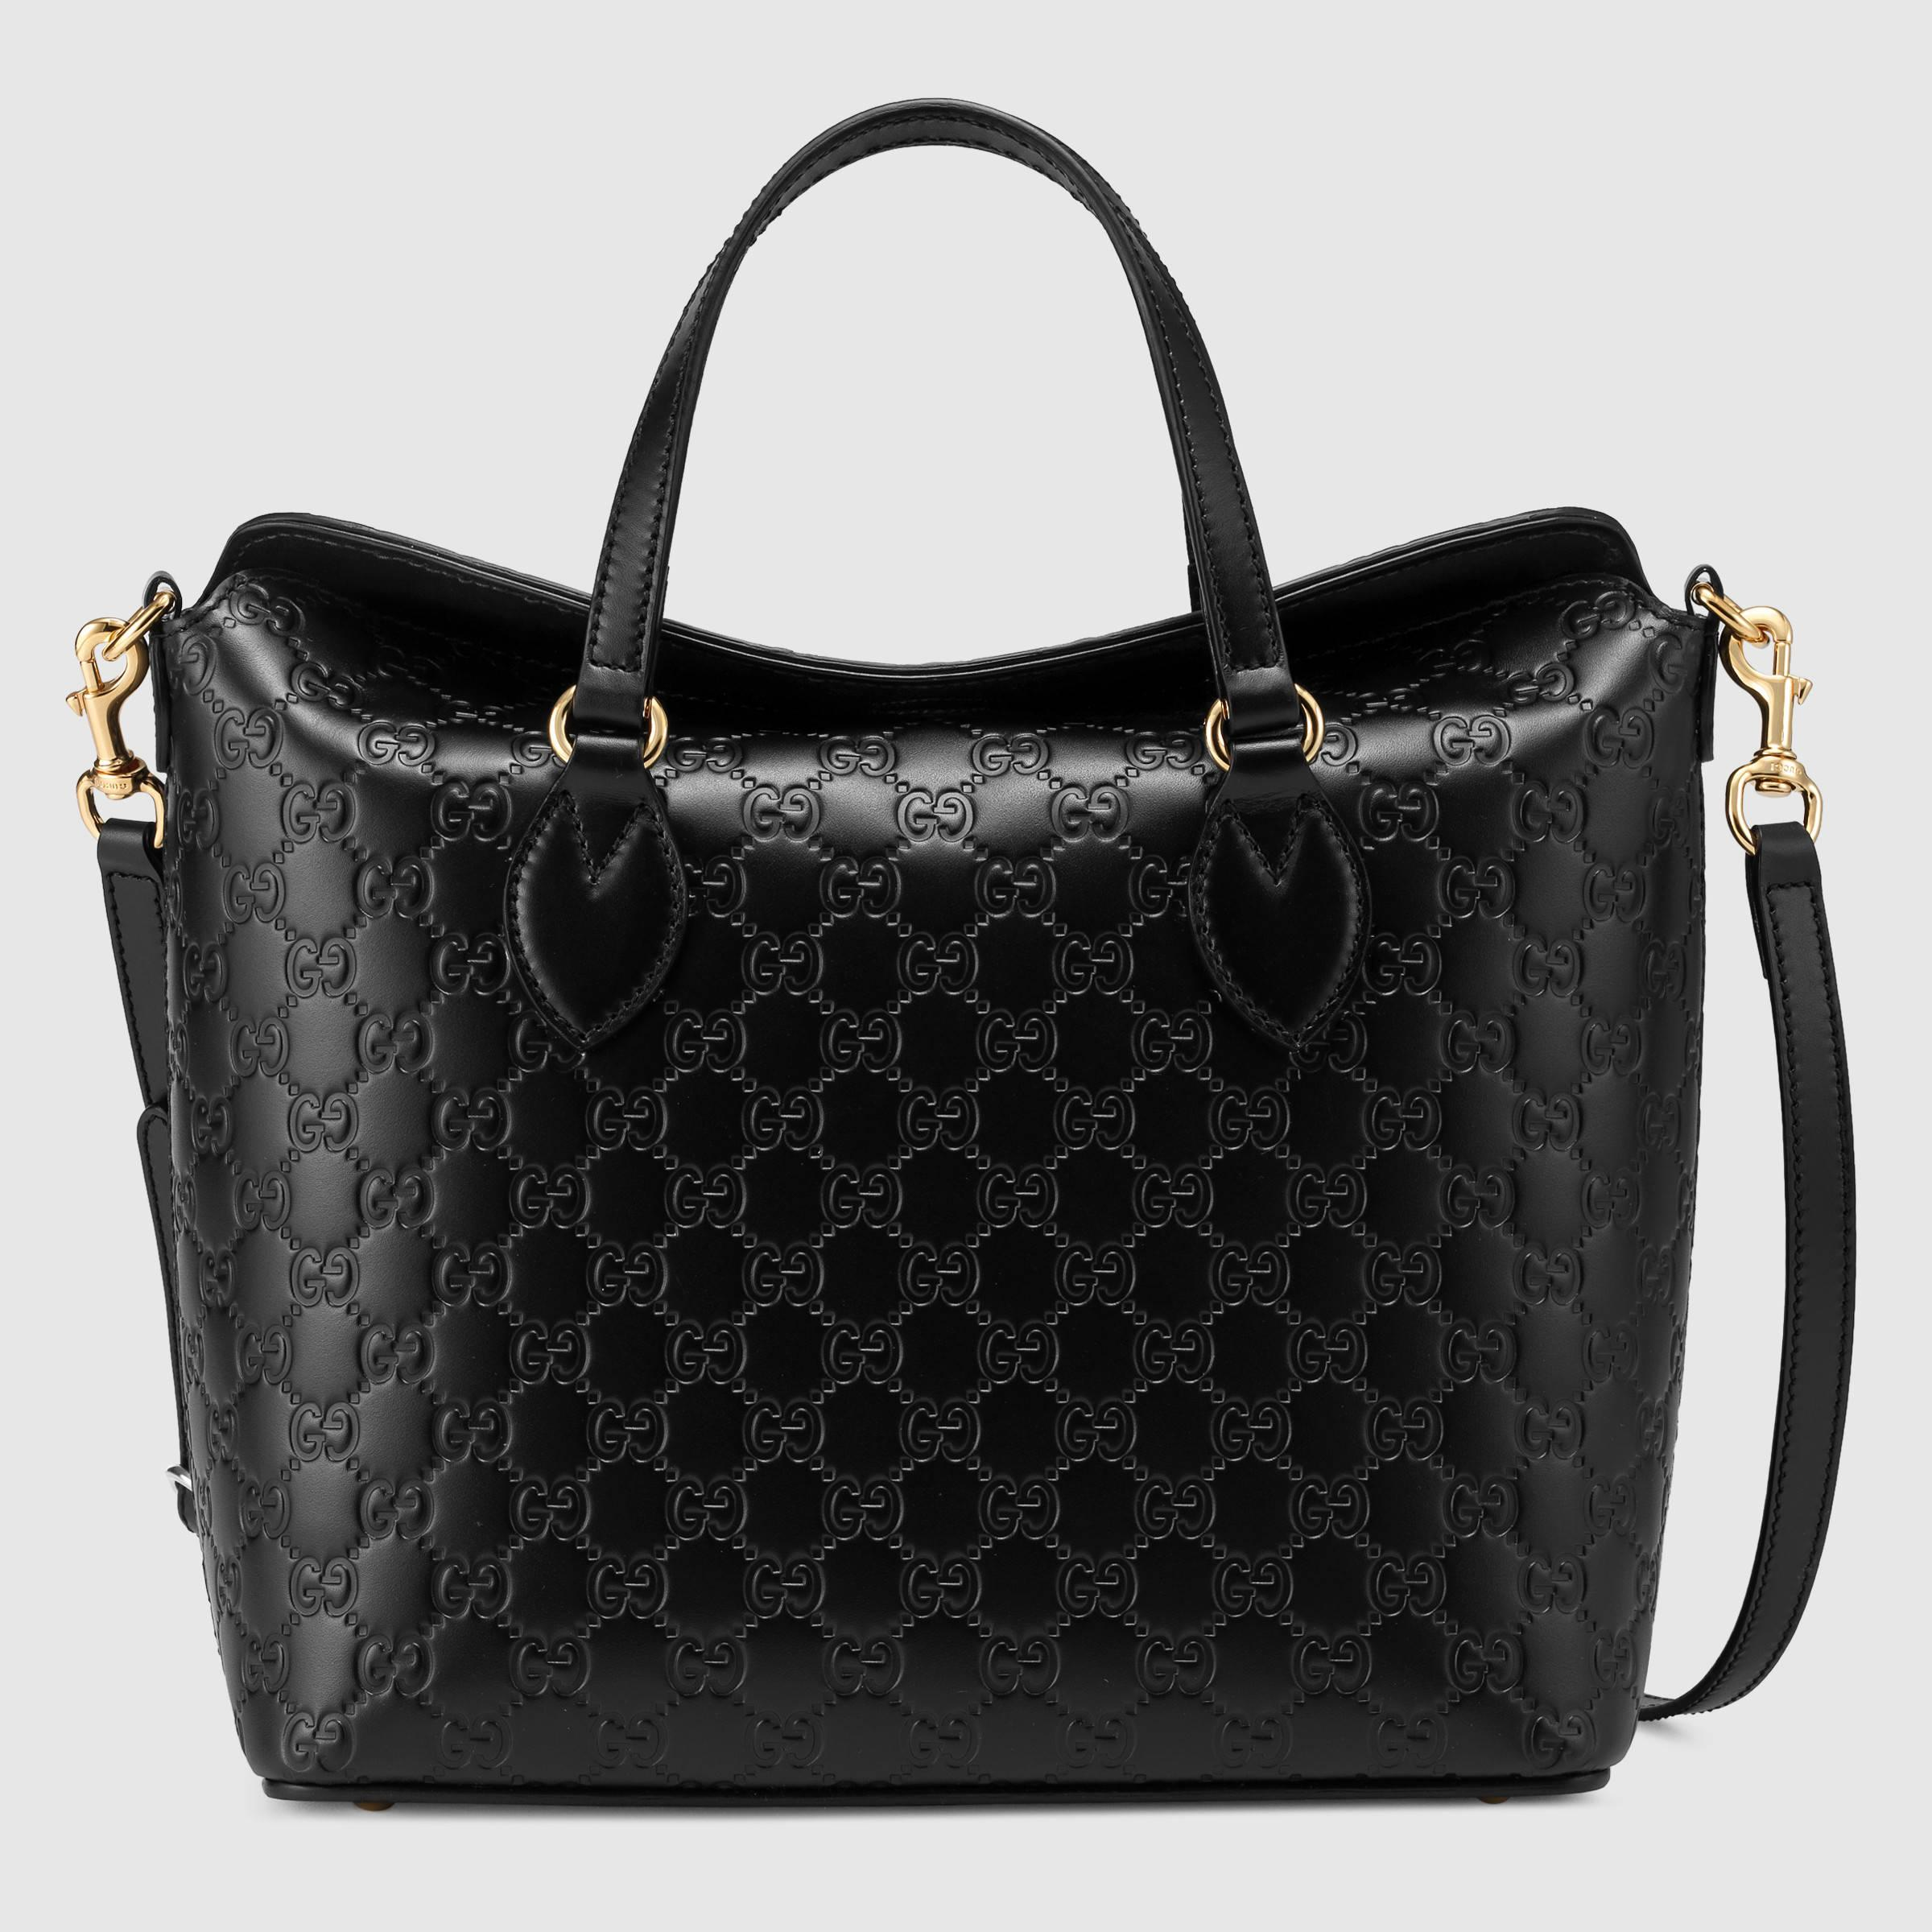 91d0895e4fd Gucci Signature Leather Tote Bag in Black - Lyst